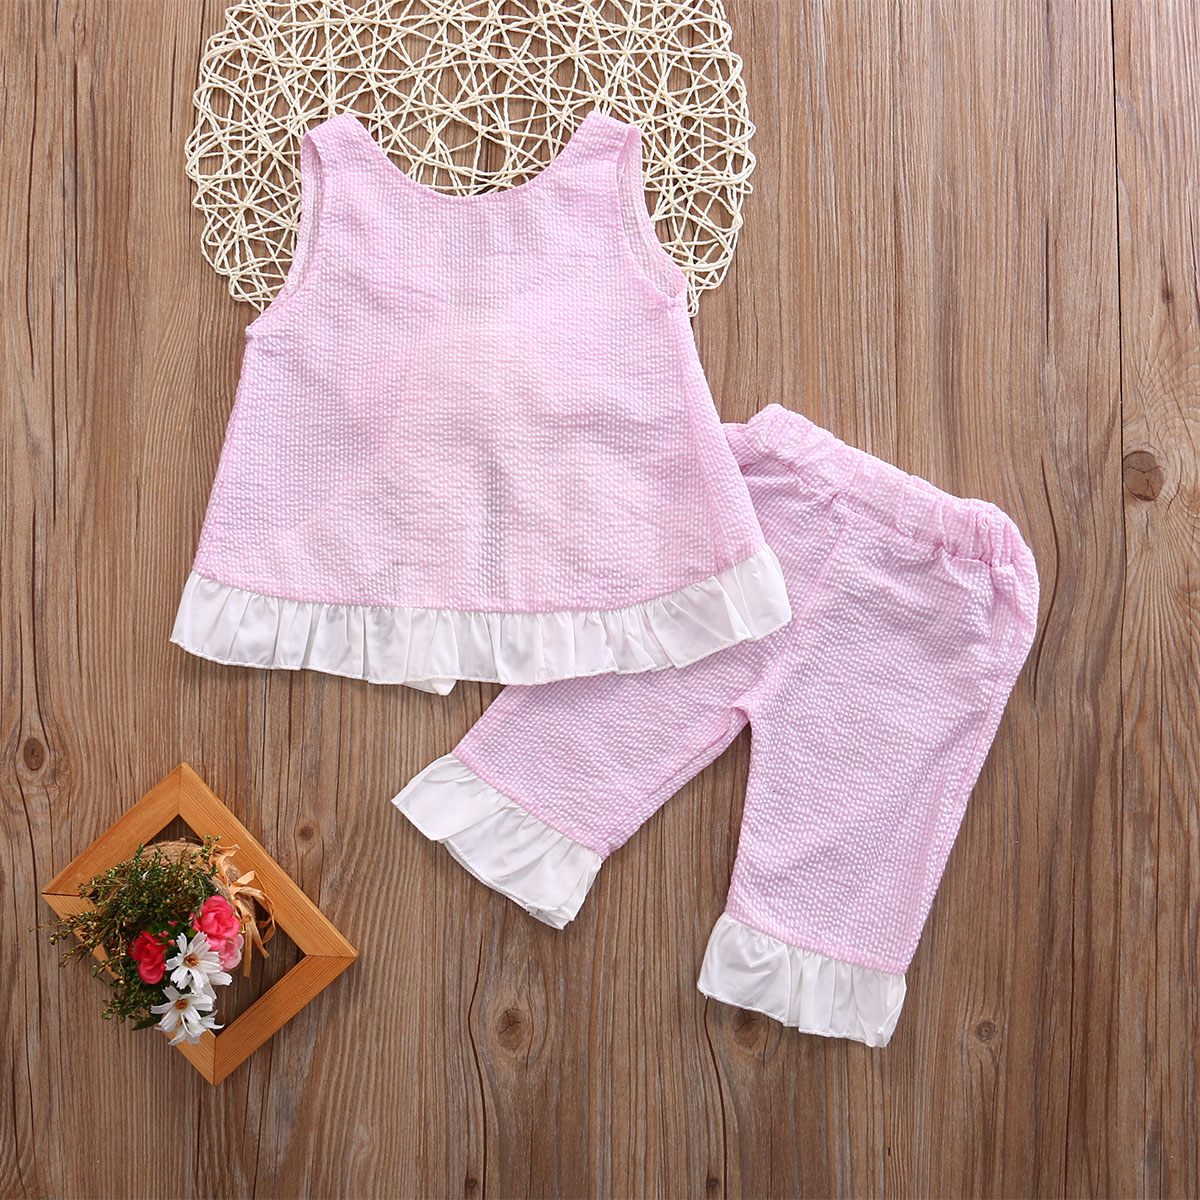 Newest Summer Kids Baby Girls O-Neck Cotton Summer Outfits Clothes Bow Sleeveless T-shirt Tops+Pants 2PCS Set 1-6Y with 2016 love kids baby boys summer sleeveless t shirt cotton tops clothes